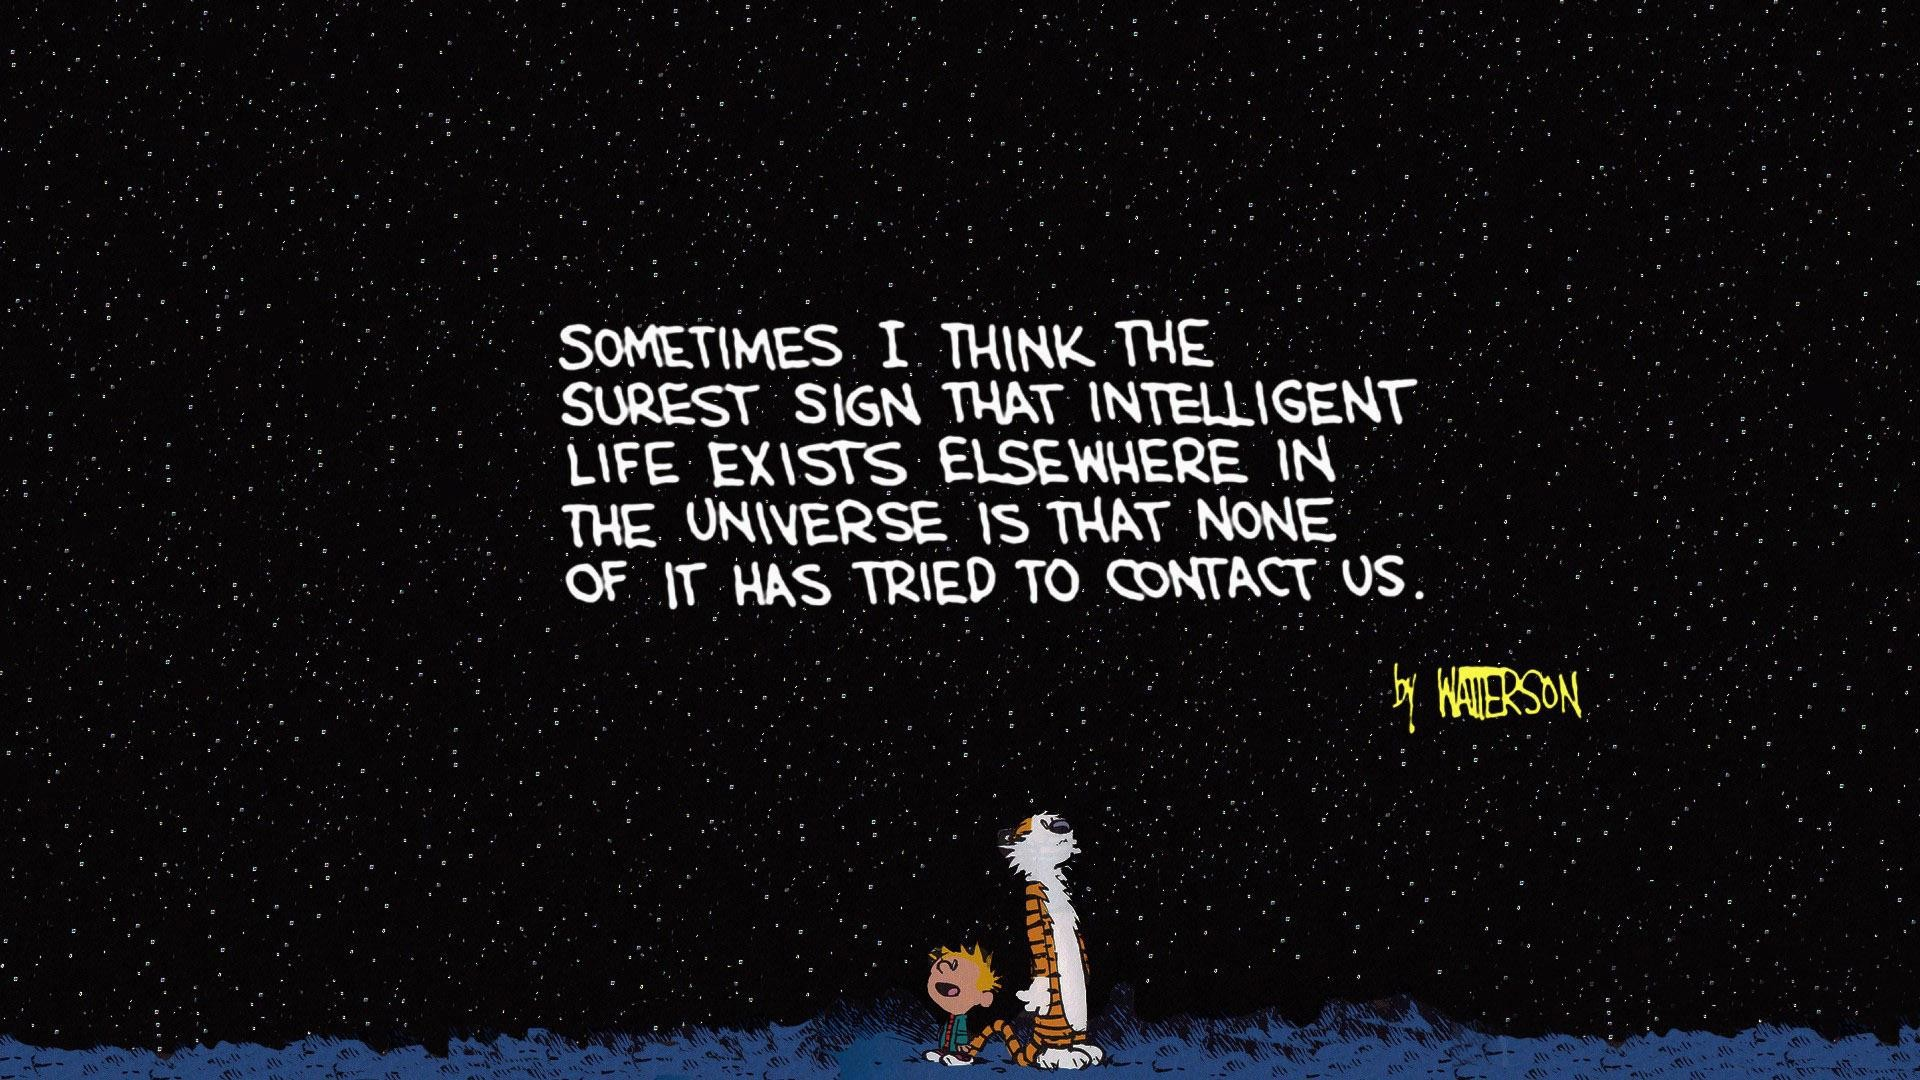 Calvin-and-Hobbes-Watterson-quote-wallpaper-wp4003908